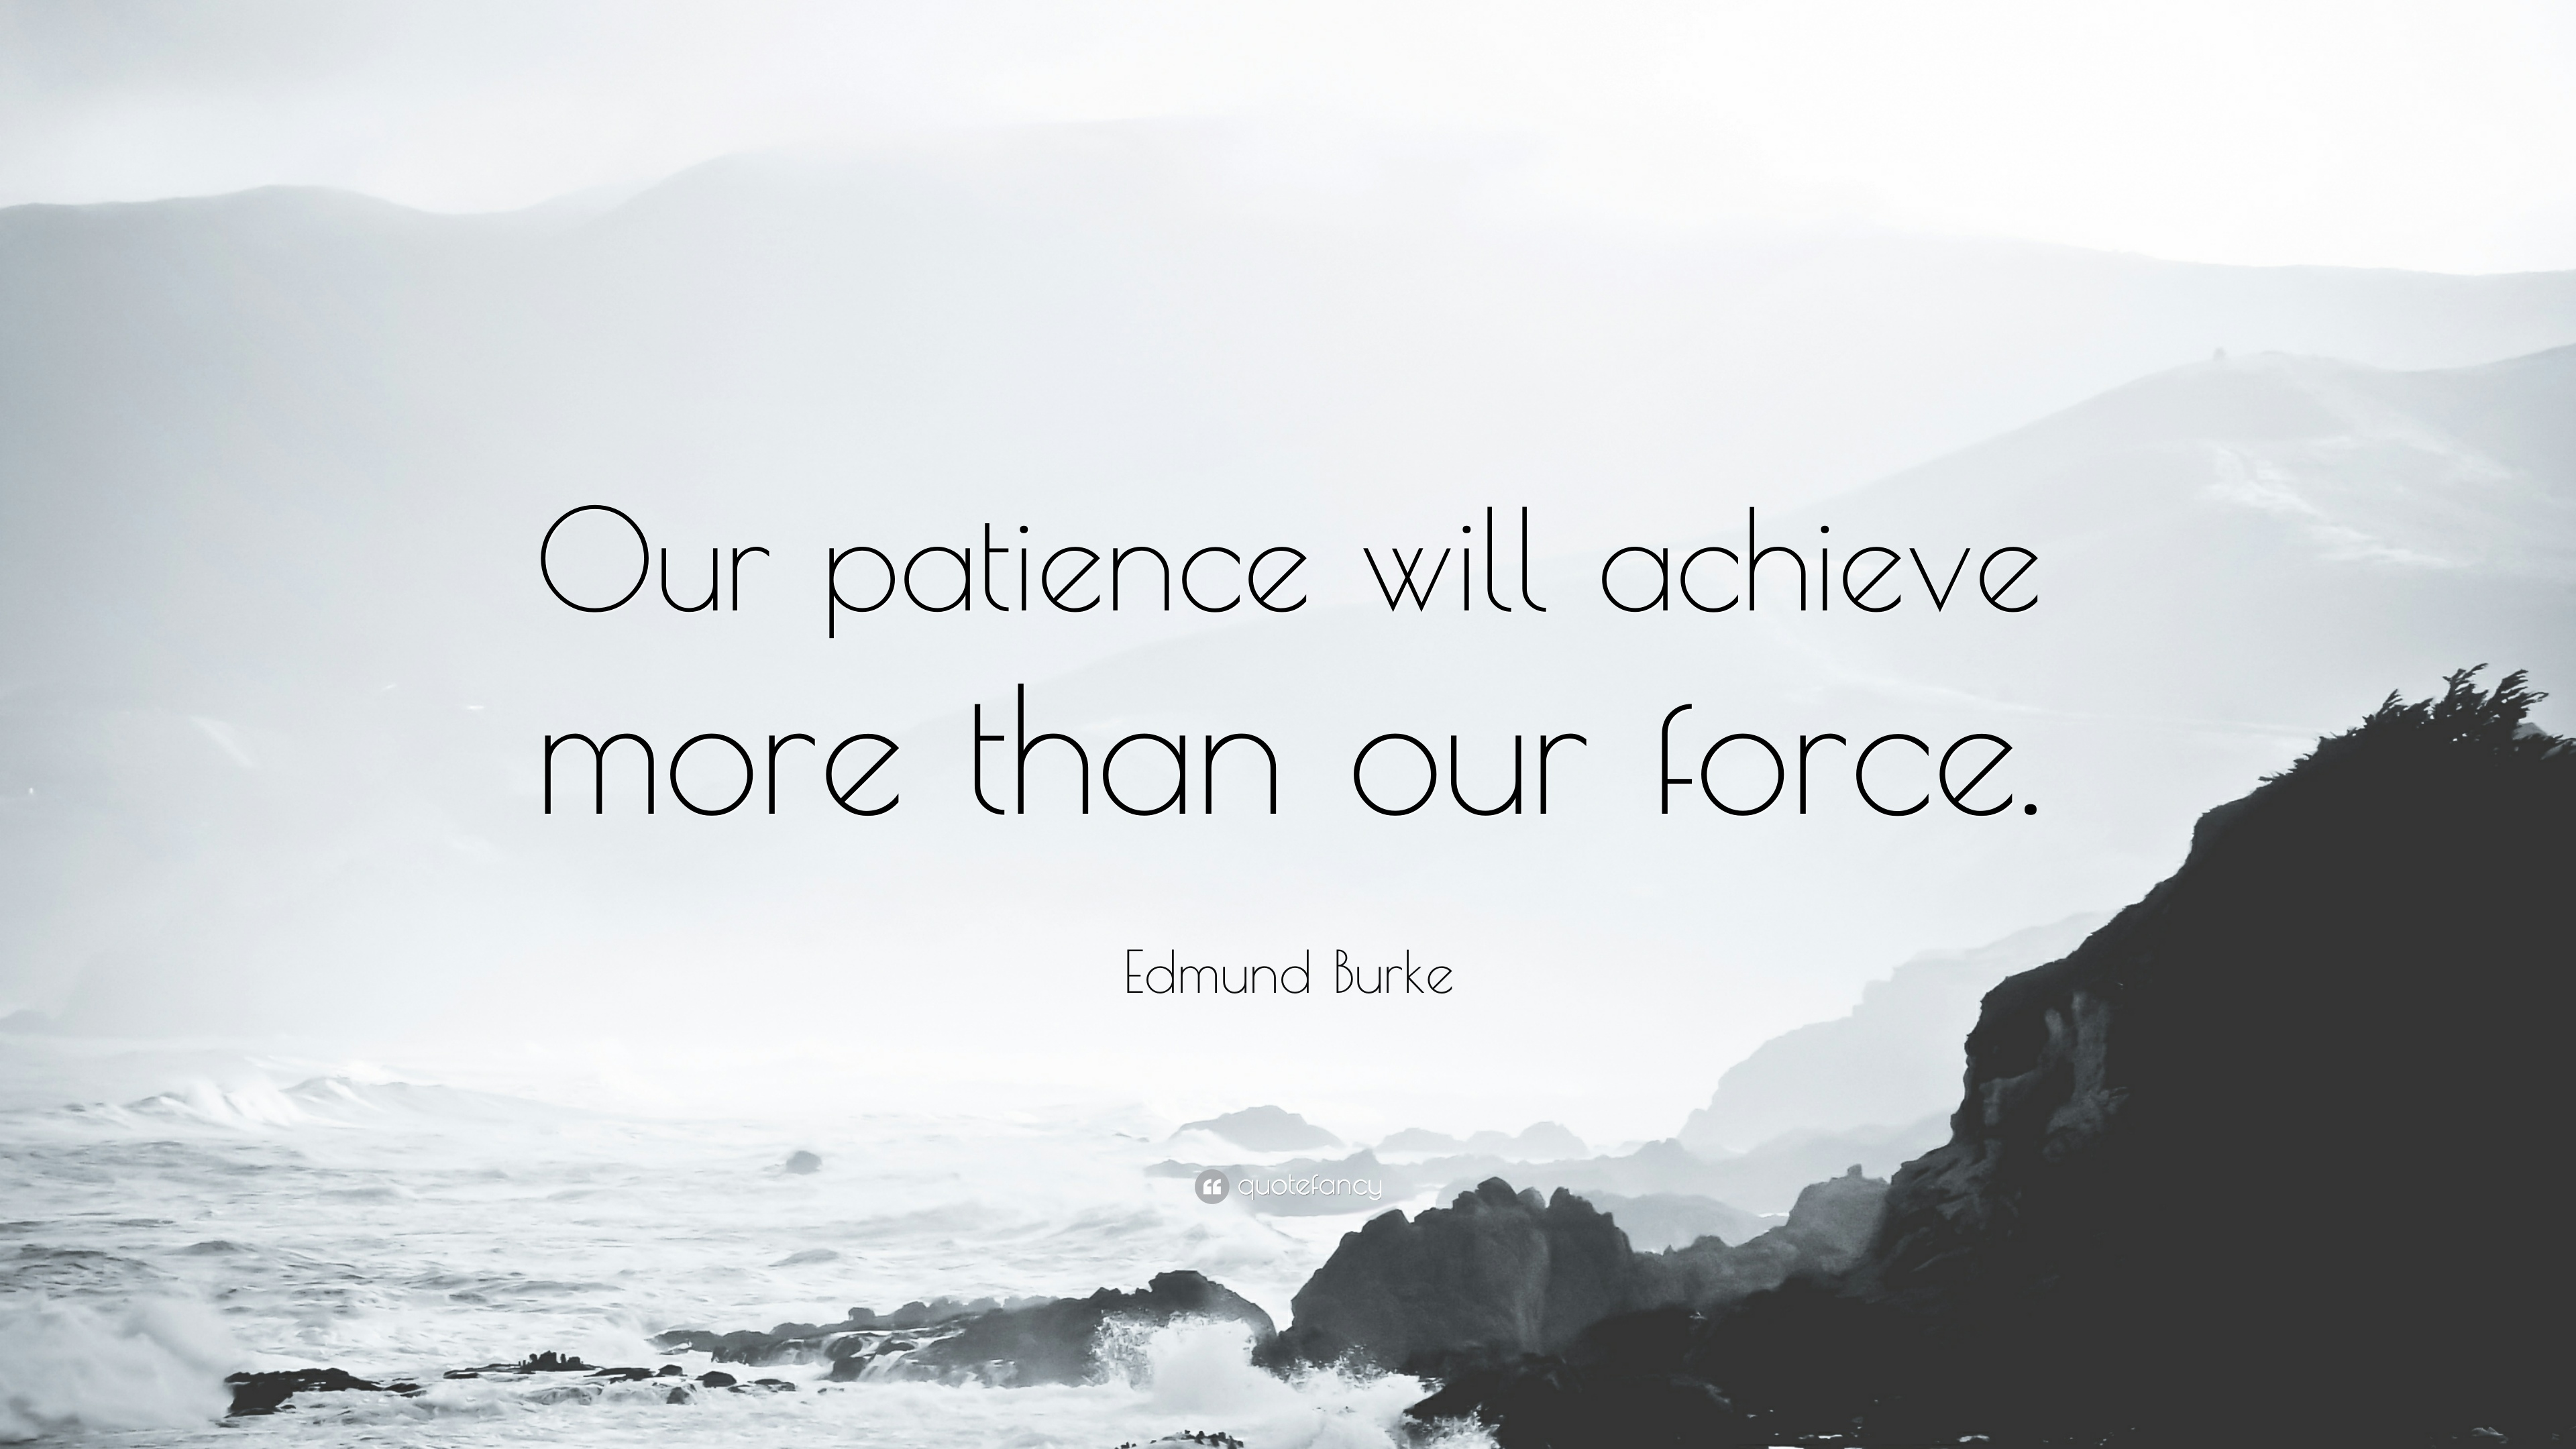 our patience will achieve more than our force